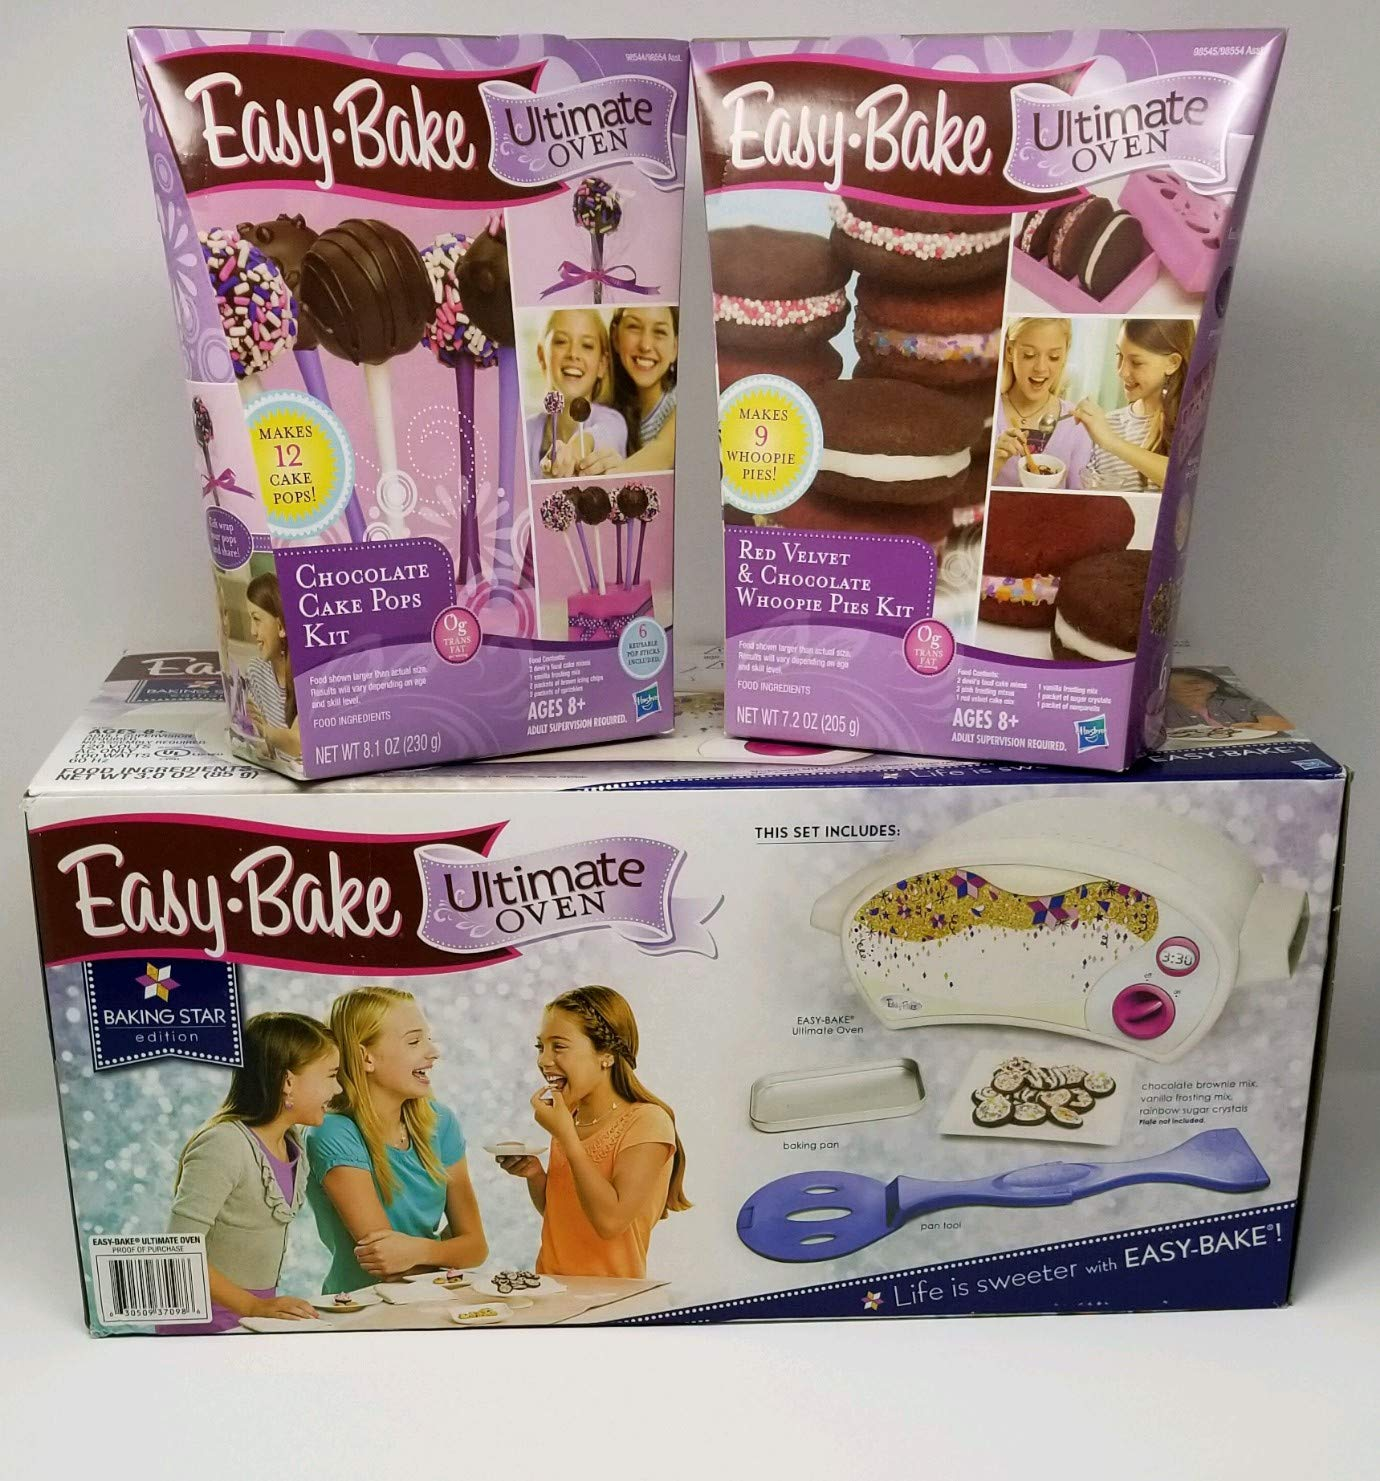 Easy Bake Ultimate Oven Star Edition + Chocolate Cake Pop Kit + Red Velvet and Chocolate Whoopie Pies